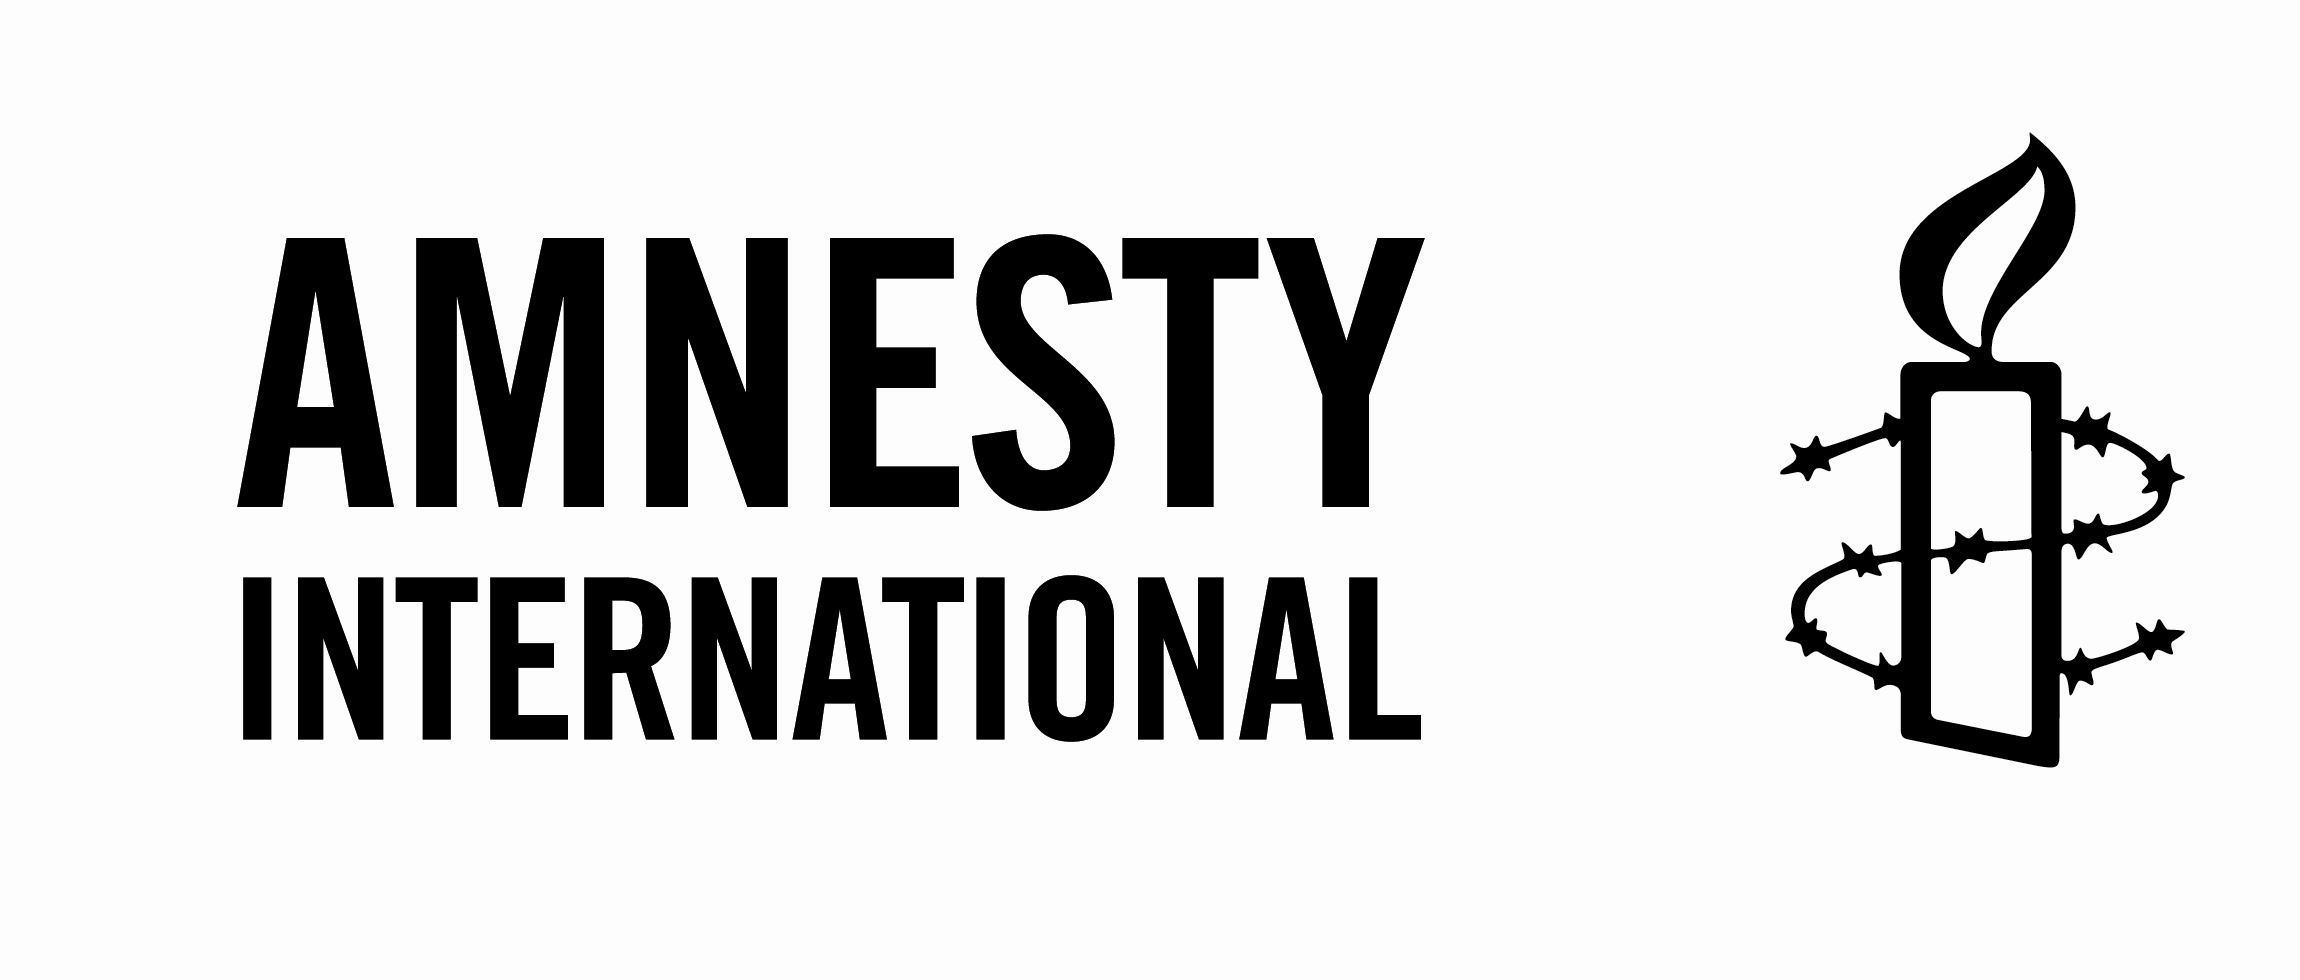 amnesty-international11.jpg